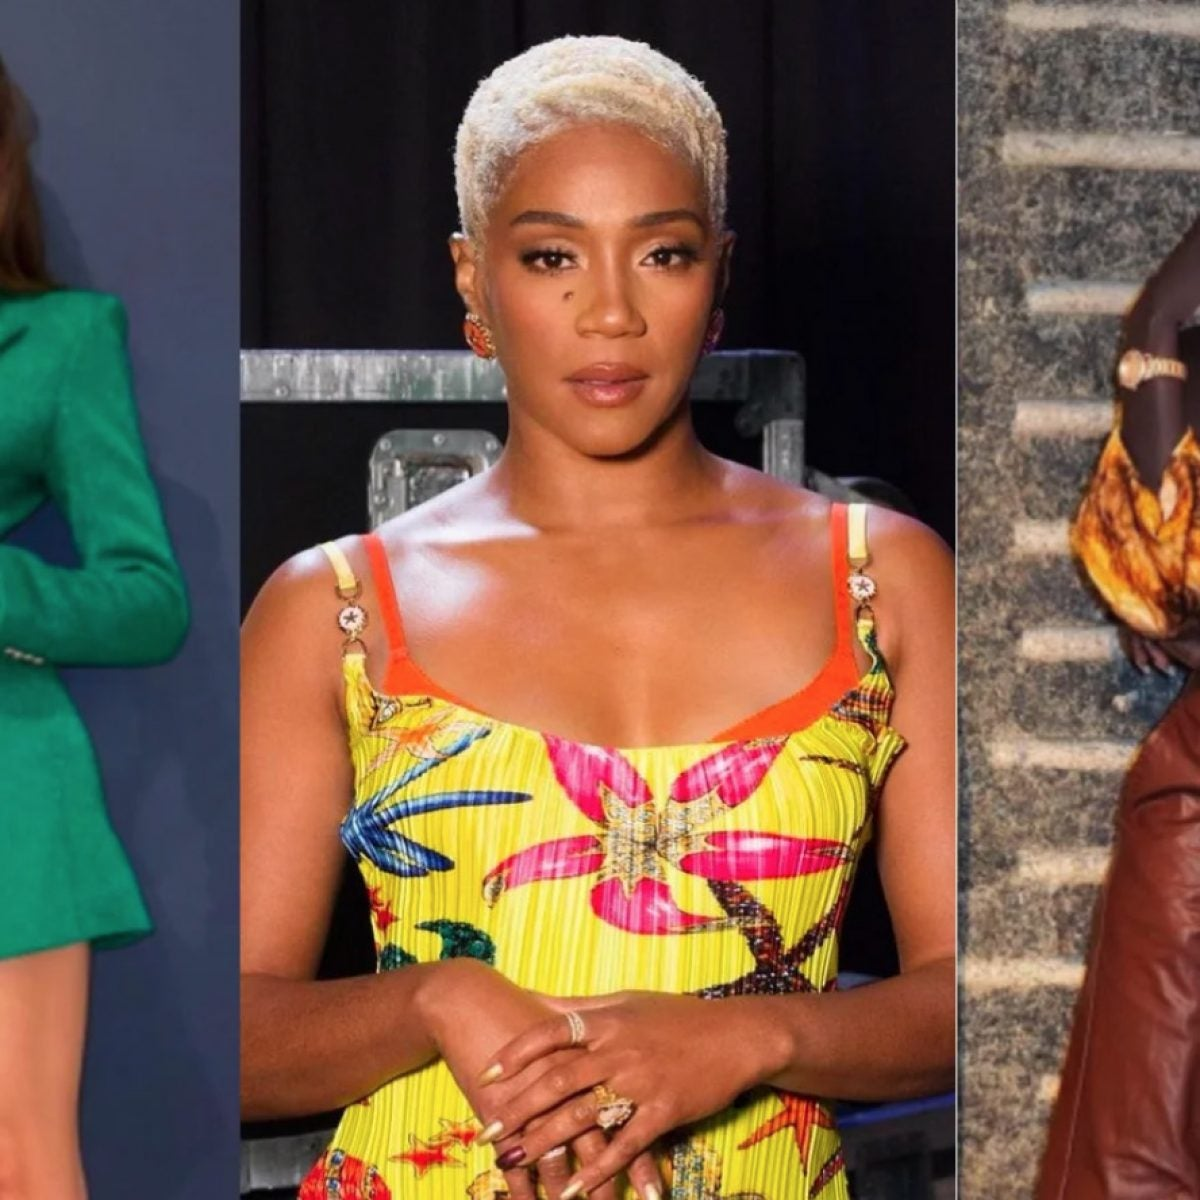 Tiffany Haddish, Zendaya & More Keep It Cute & Colorful In This Week's Edition Of Star Gazing!